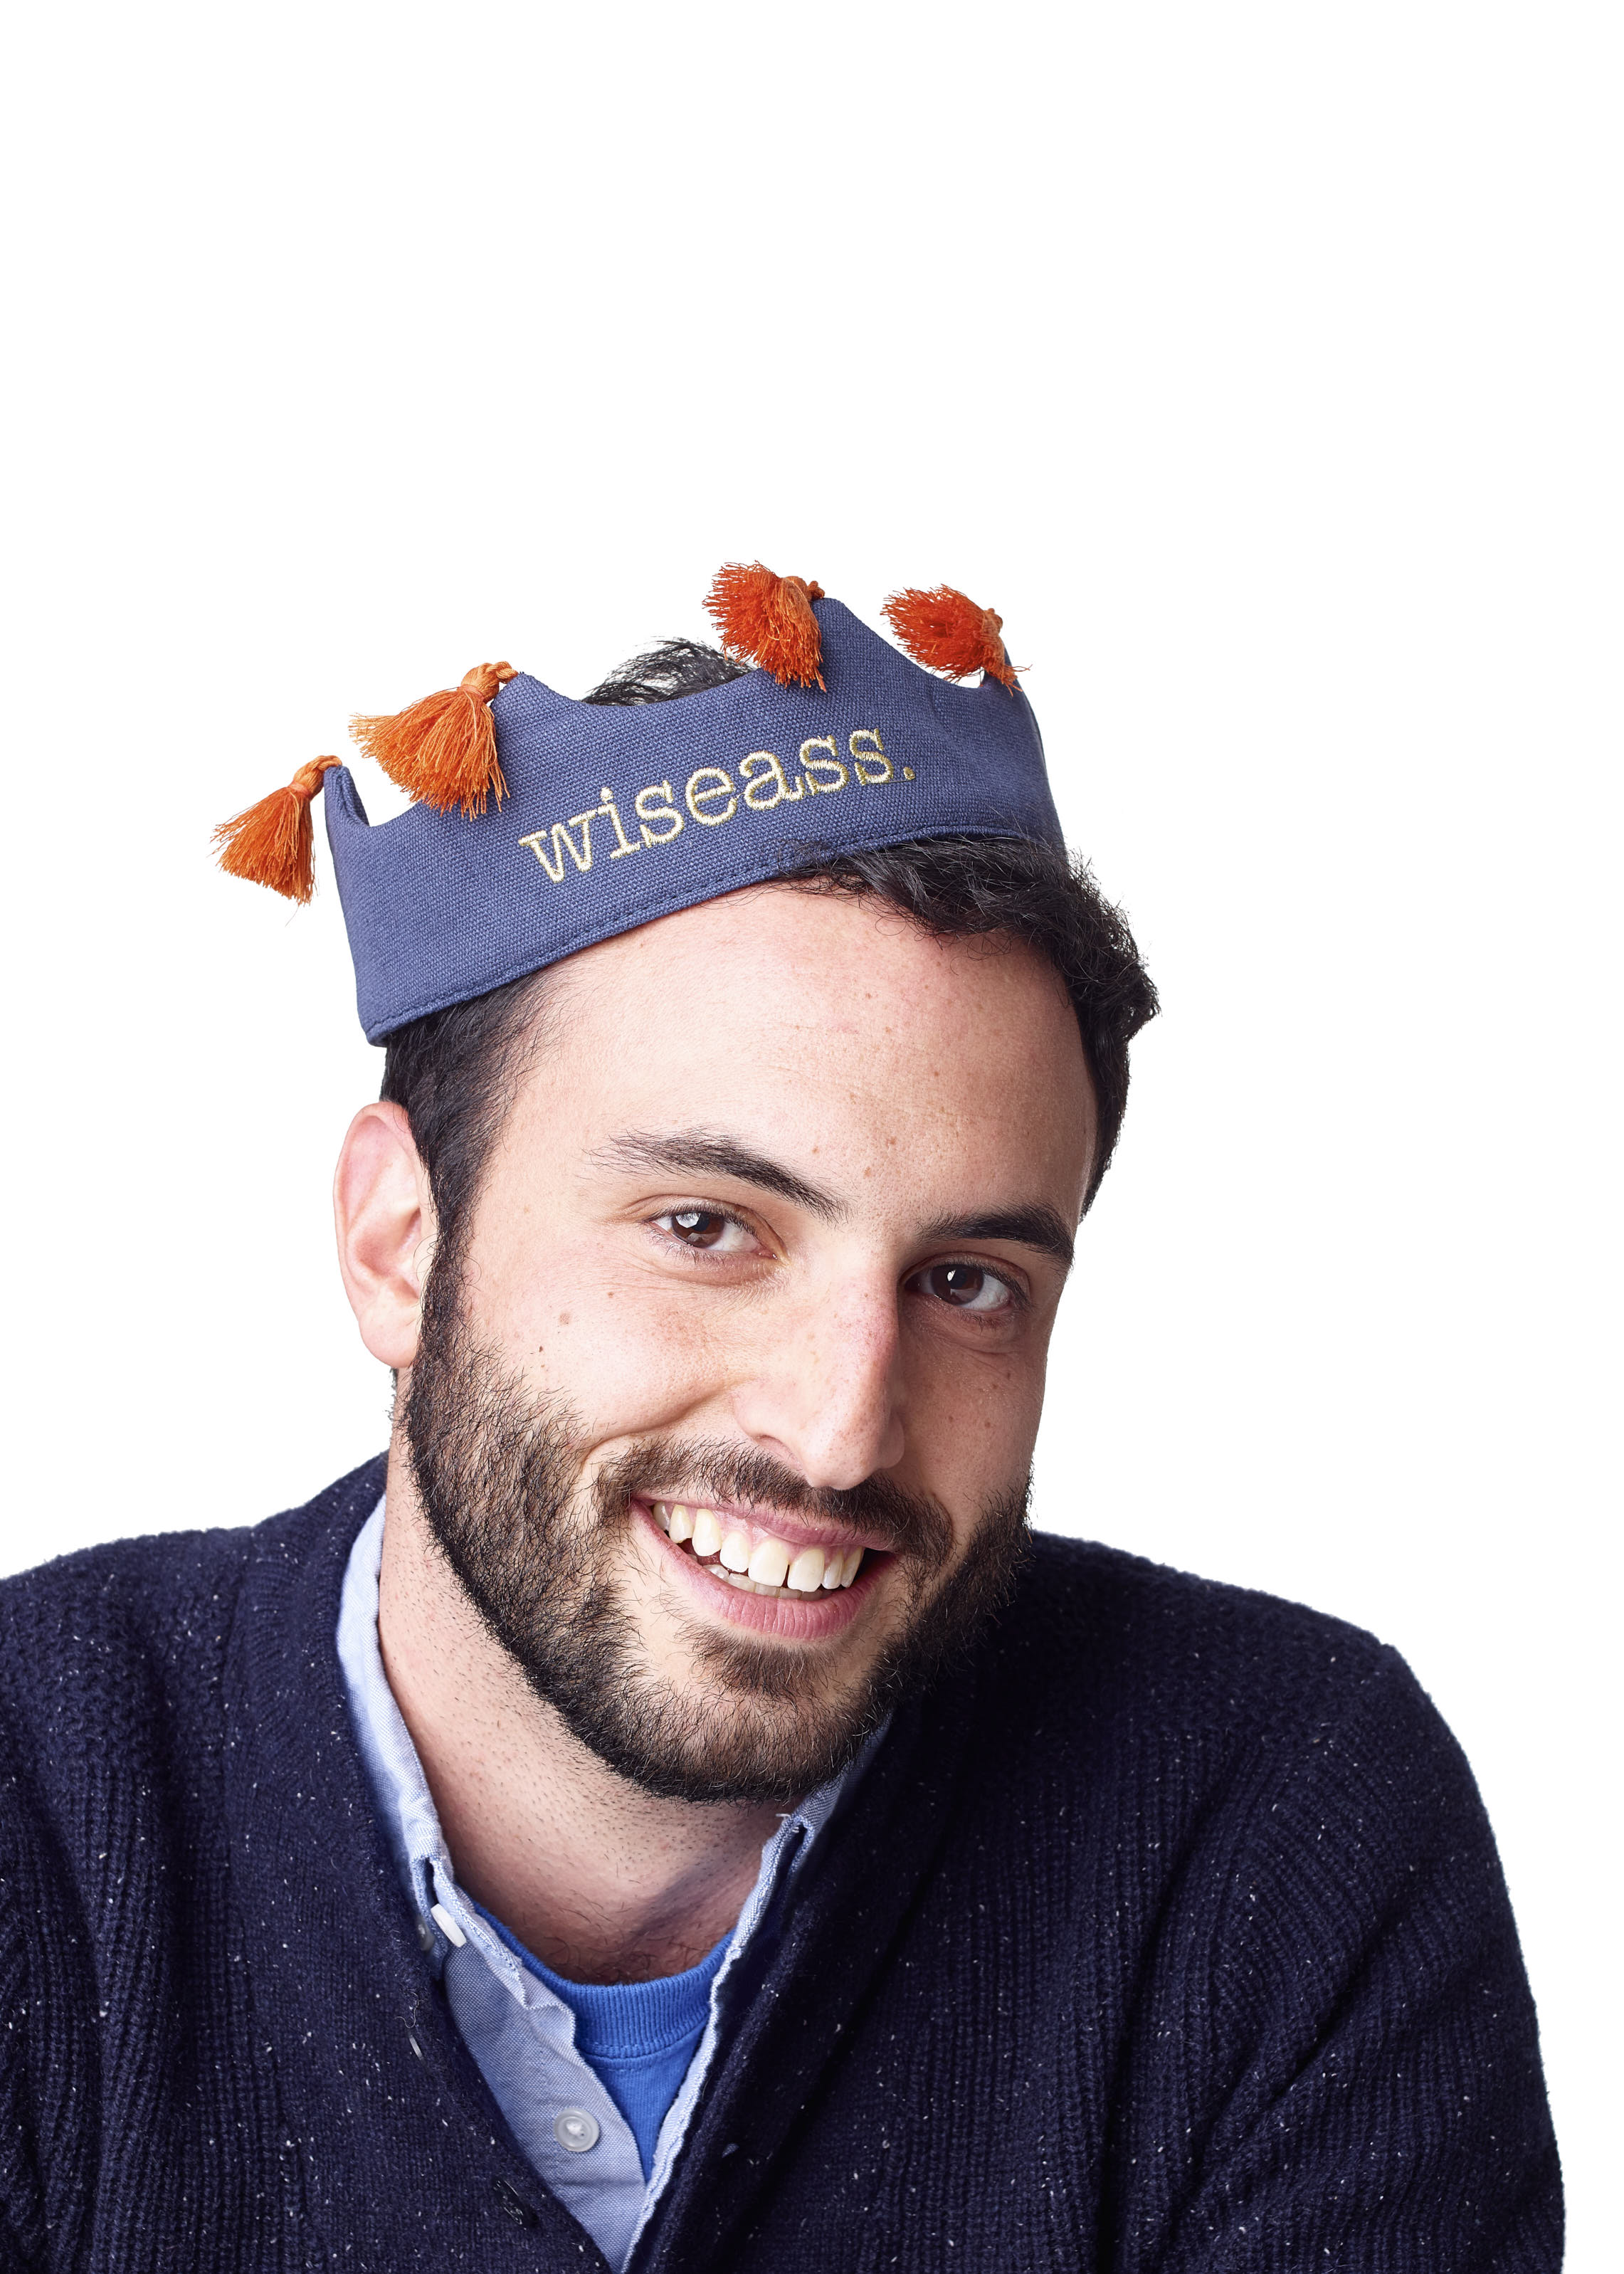 17-01-16_Crowns_For_The_People_COREY_0551.jpg